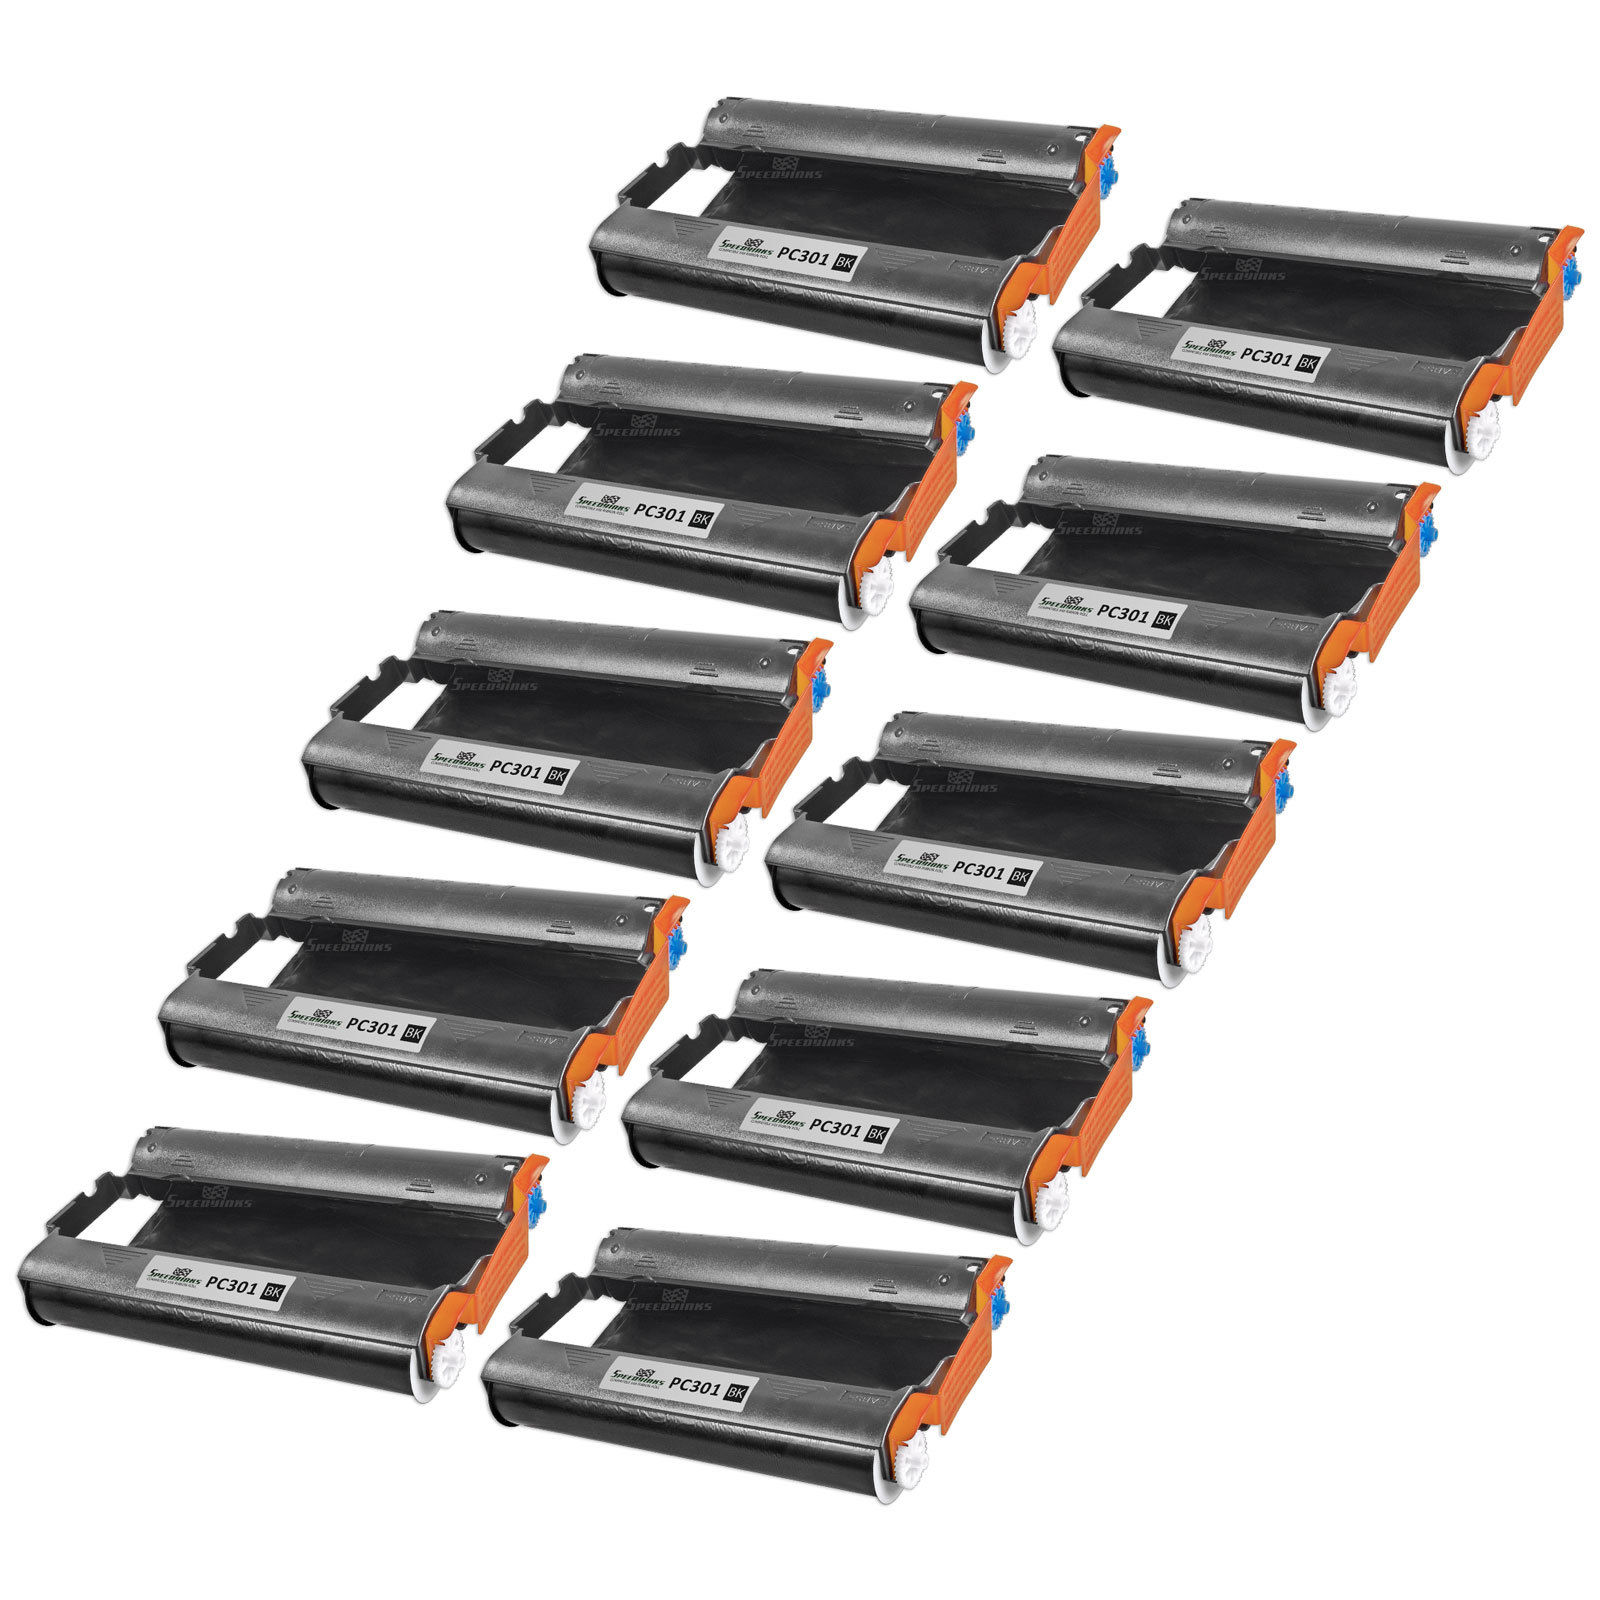 10PK PC301 PC-301 with PC302RF for Brother Fax Printing Cartridge MFC-970MC 885M